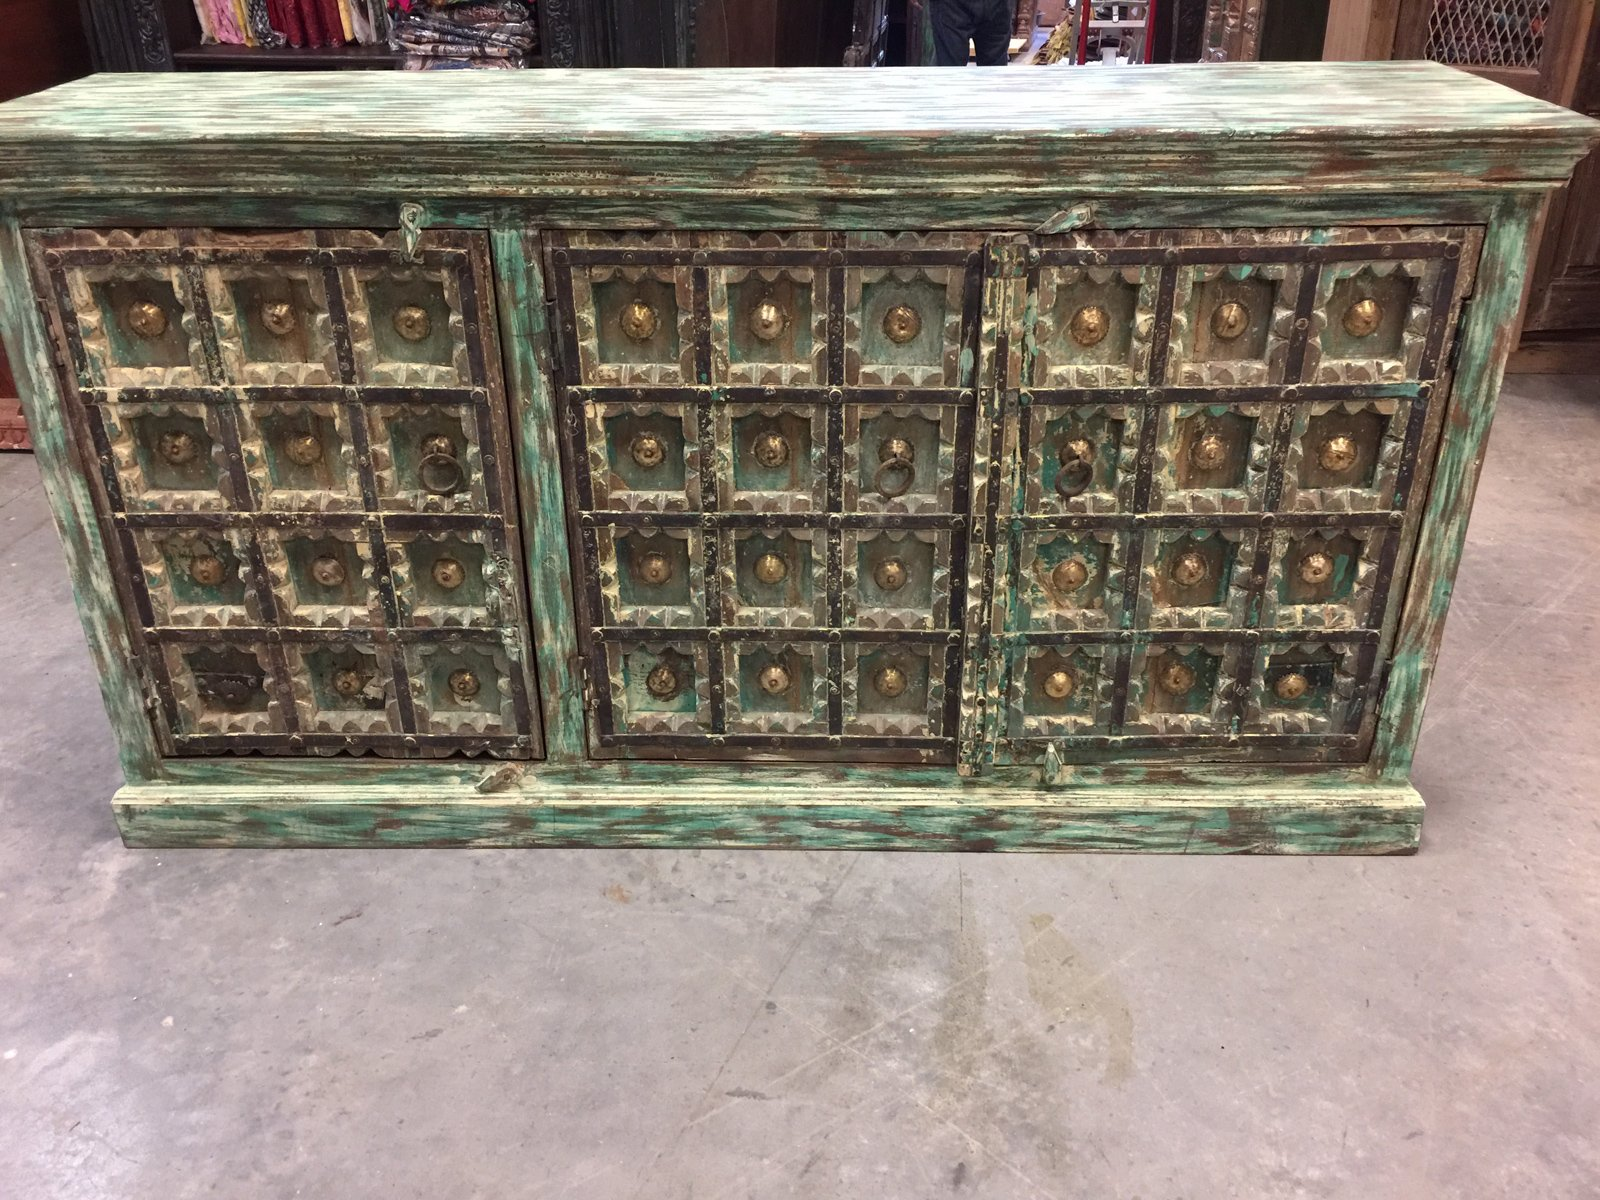 Mogulinterior Turquoise Green Distressed Square Carved Brass Medallion Sideboards Chest Storage Buffet Console